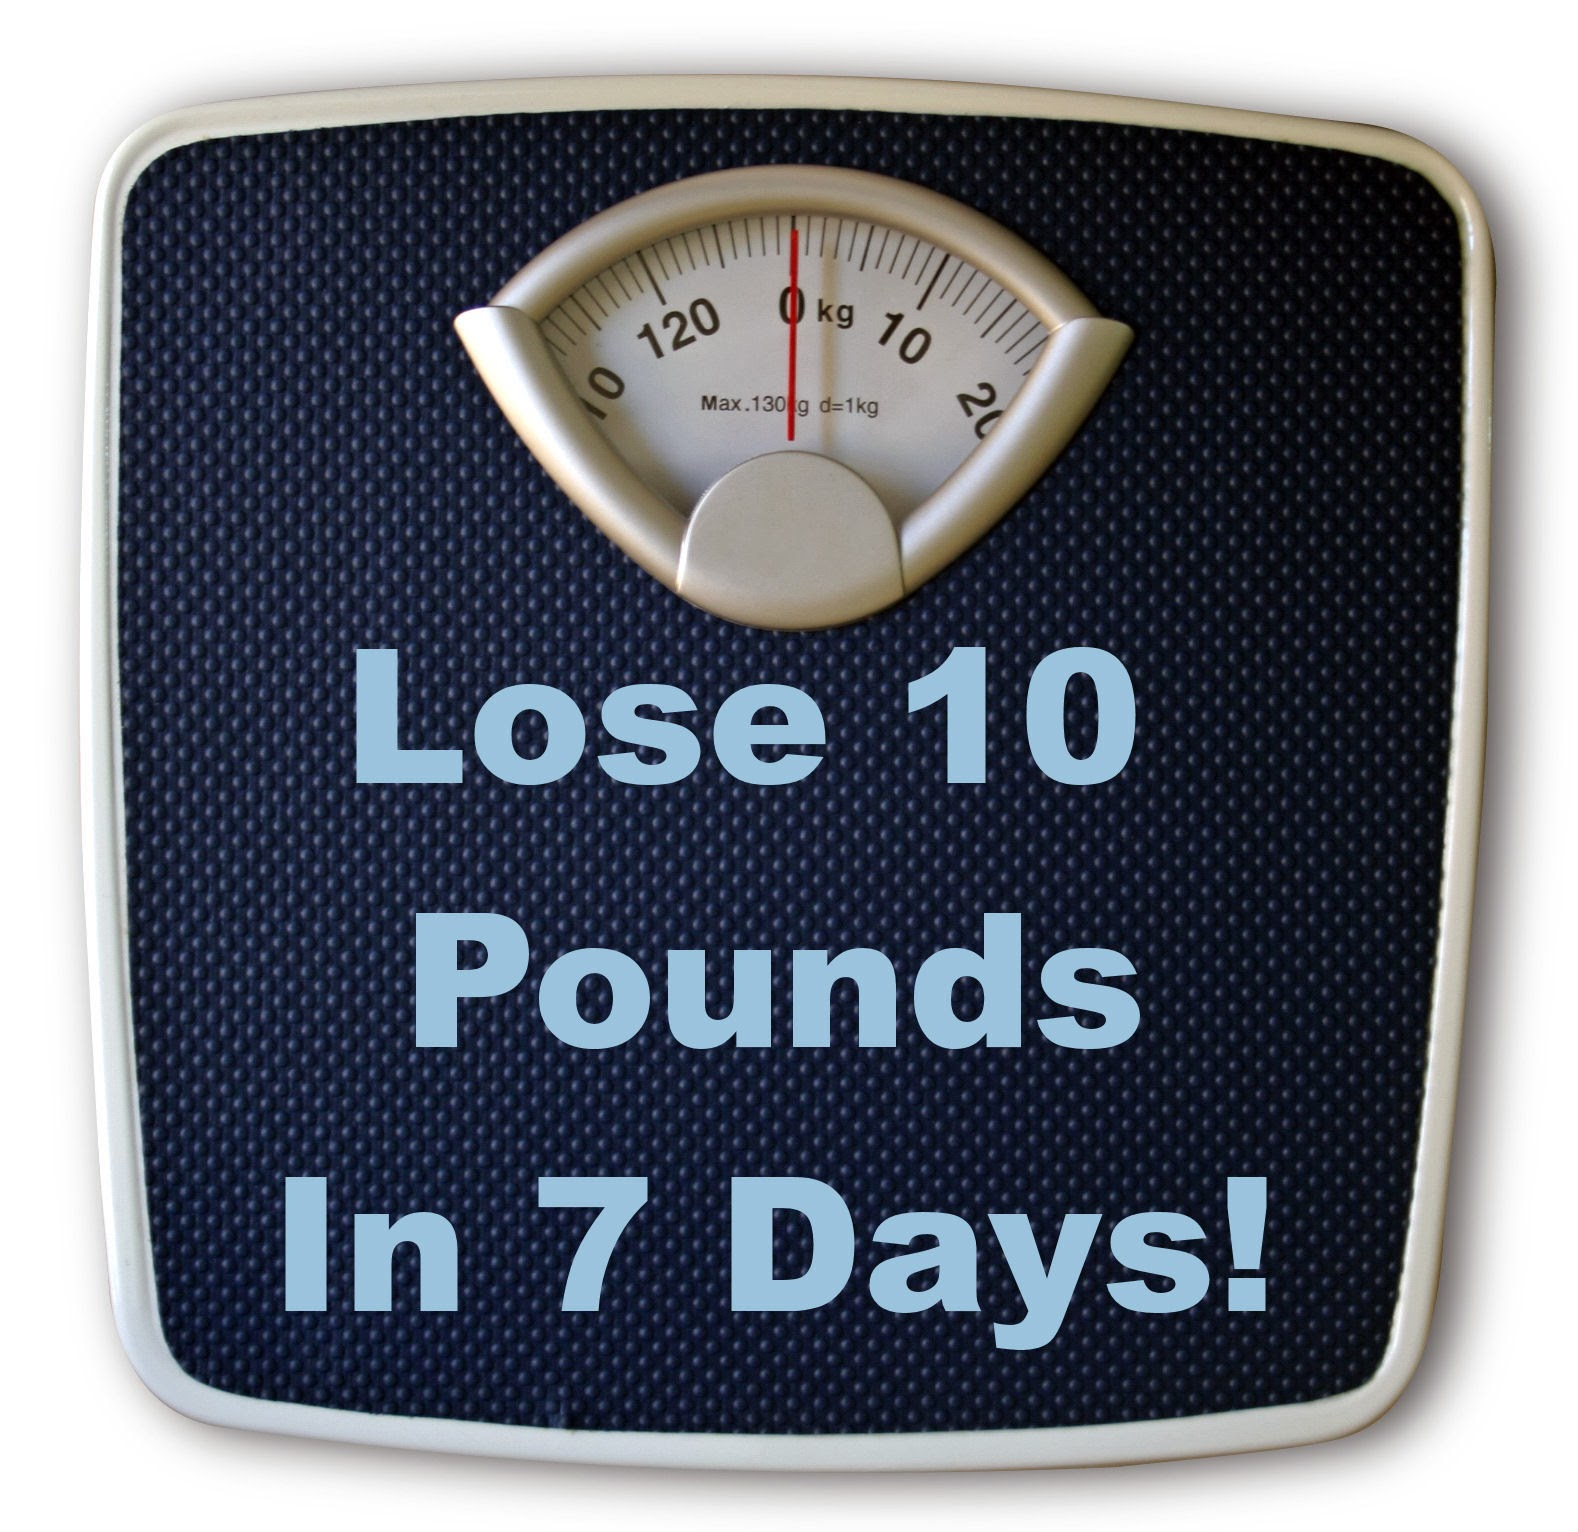 Dr Oz 2 Week Rapid Weight-Loss Plan - Week 1 Review - First